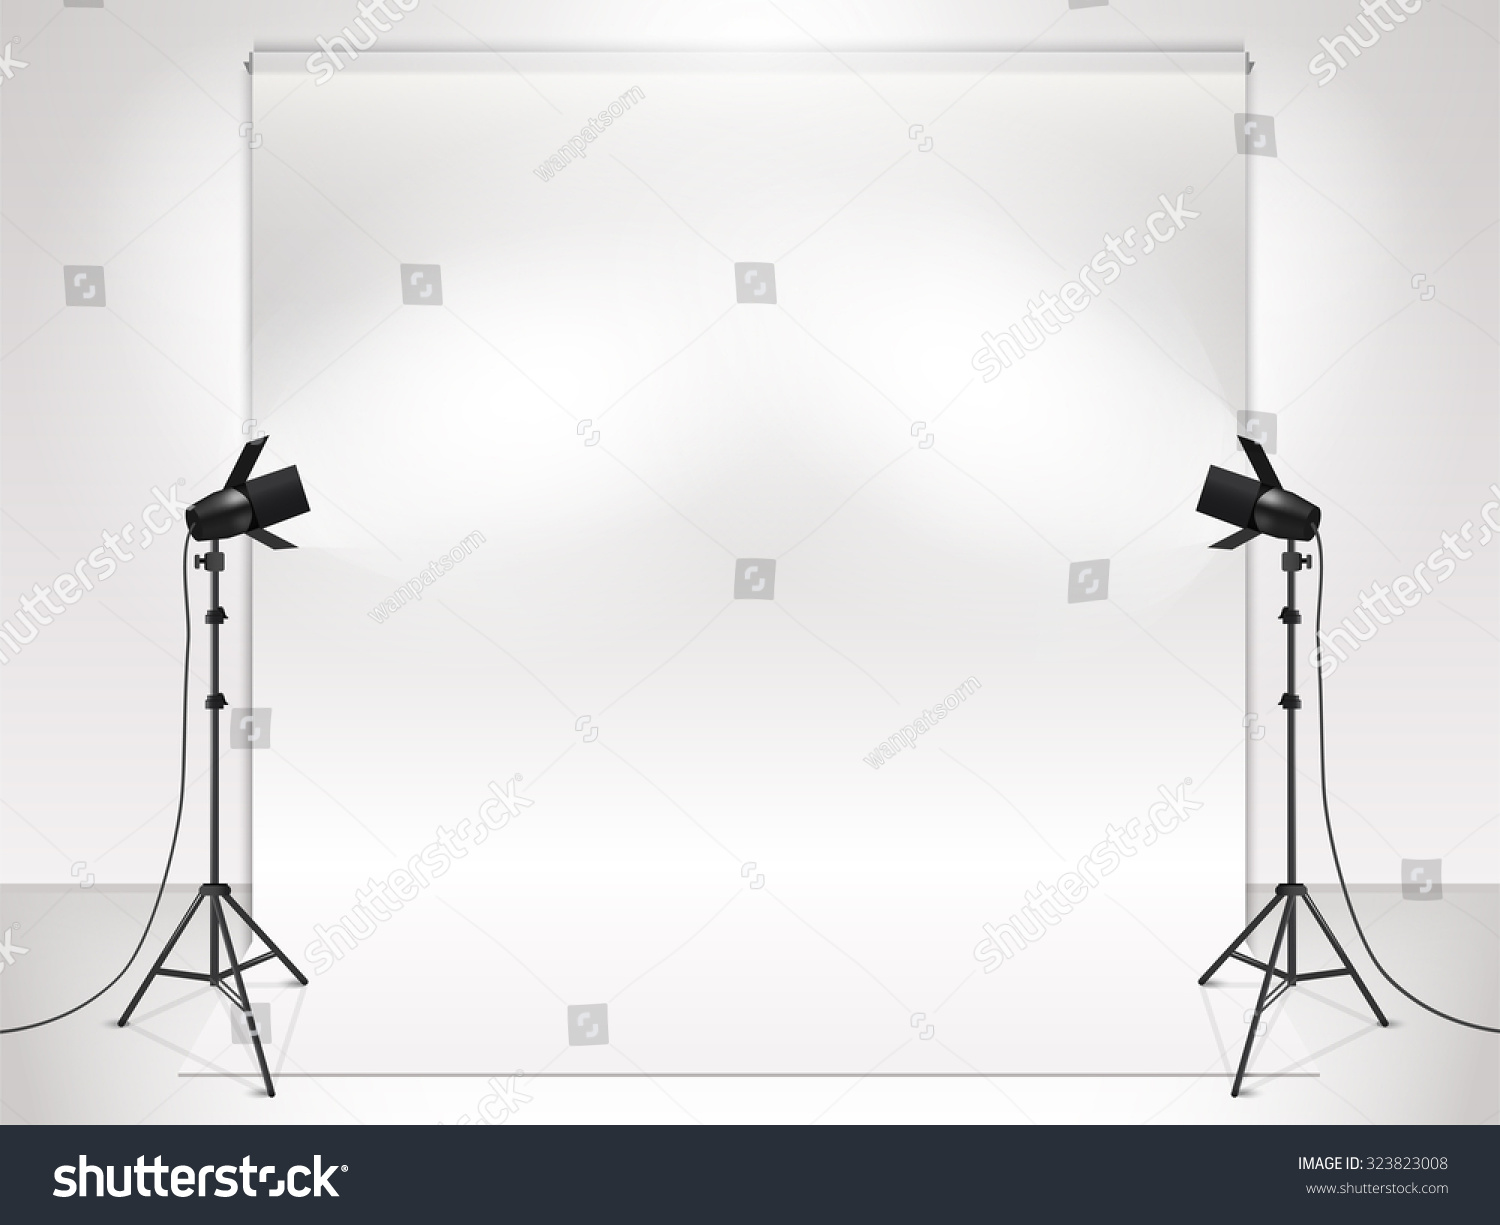 Photography Studio Lighting Equipment Backdrop Vector Stock Diagram With And